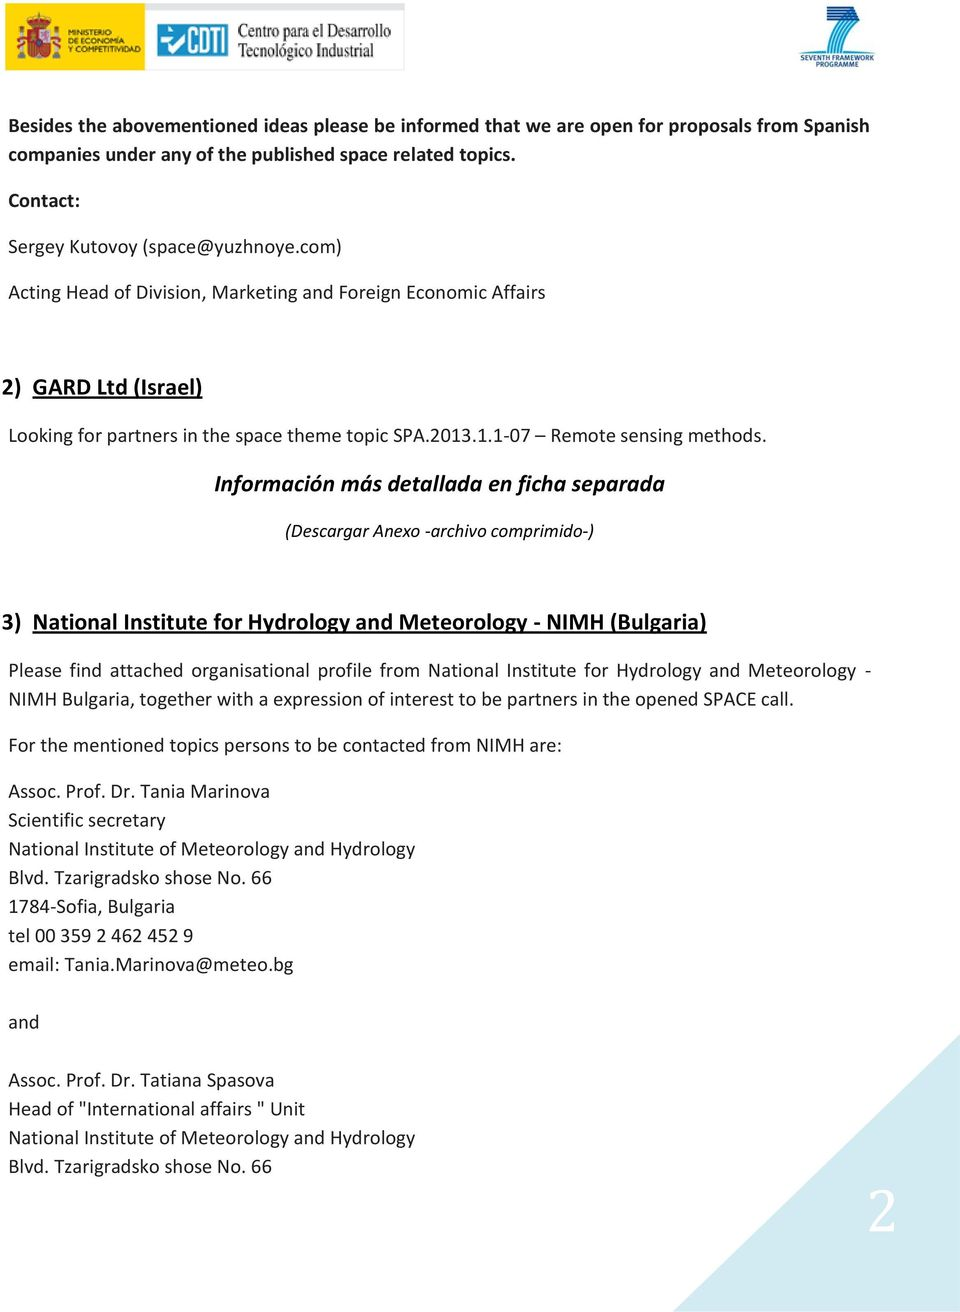 3) National Institute for Hydrology and Meteorology - NIMH (Bulgaria) Please find attached organisational profile from National Institute for Hydrology and Meteorology - NIMH Bulgaria, together with